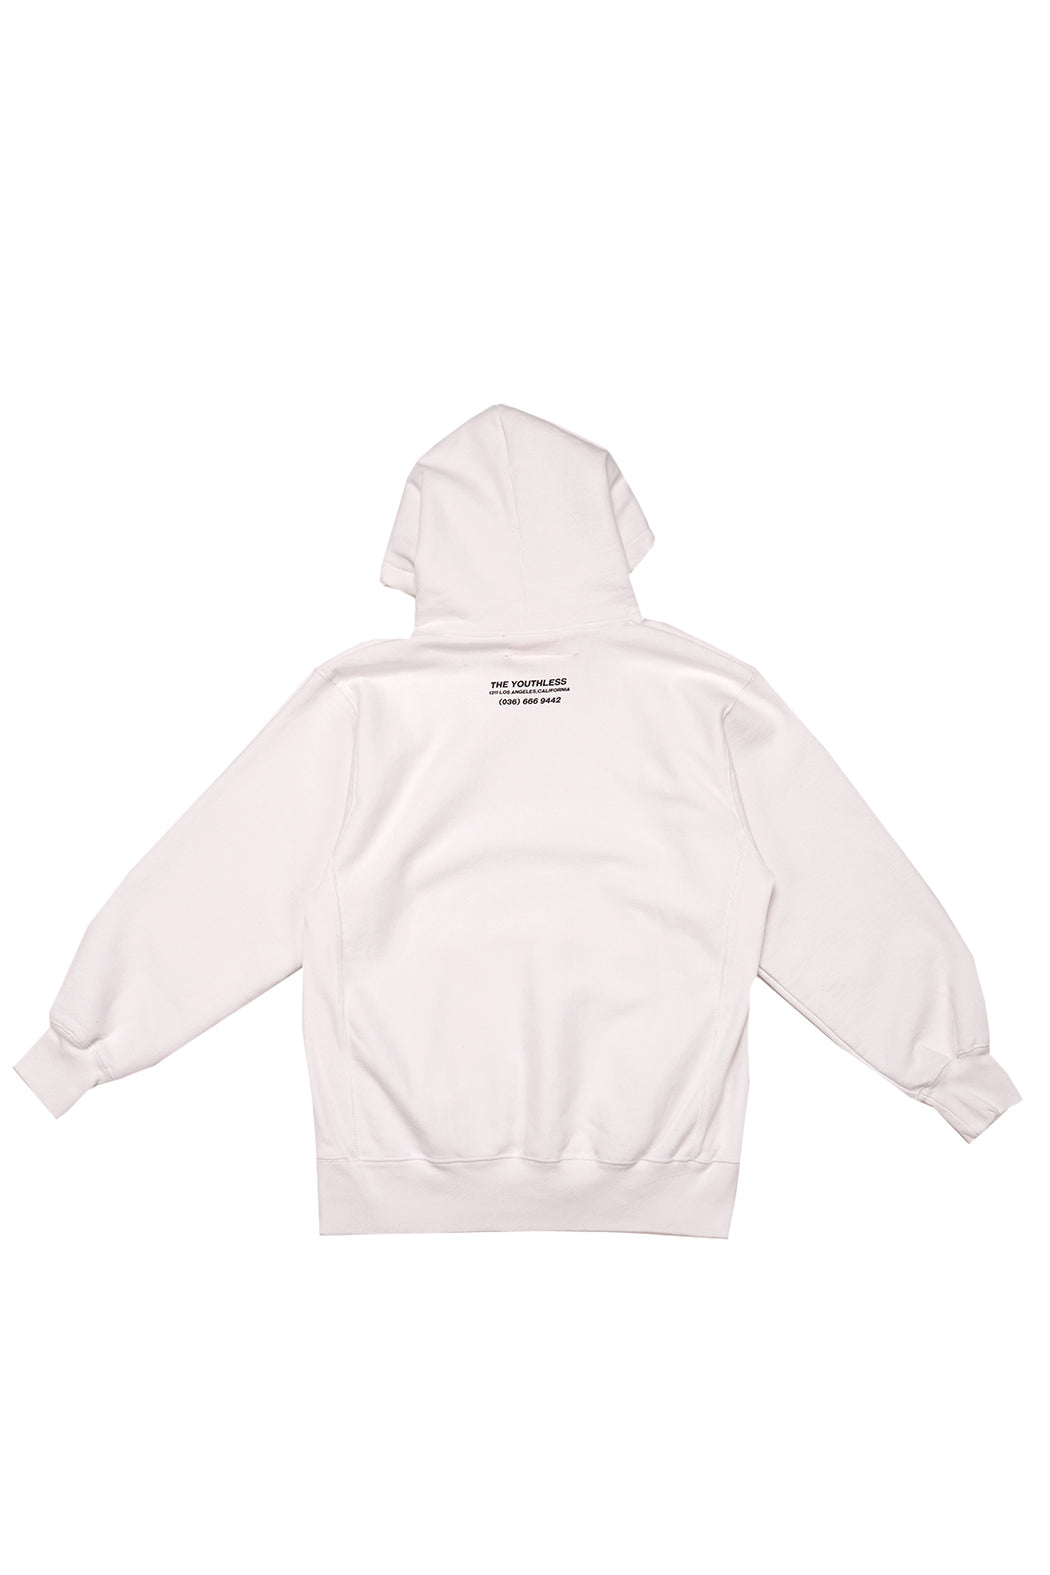 Adults Only Sweatshirt - White